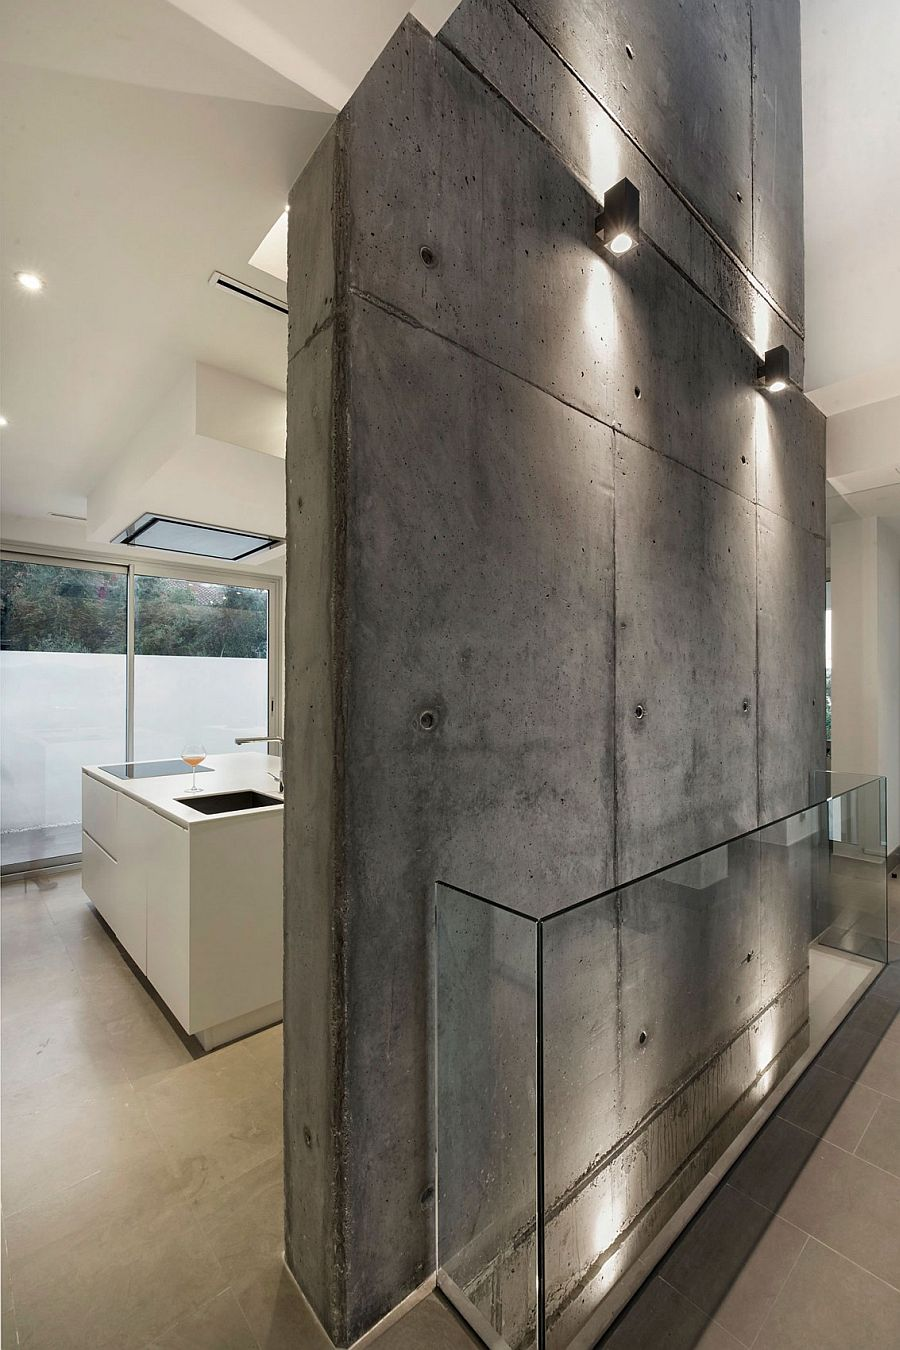 Raw concrete becomes an important part of the home's design